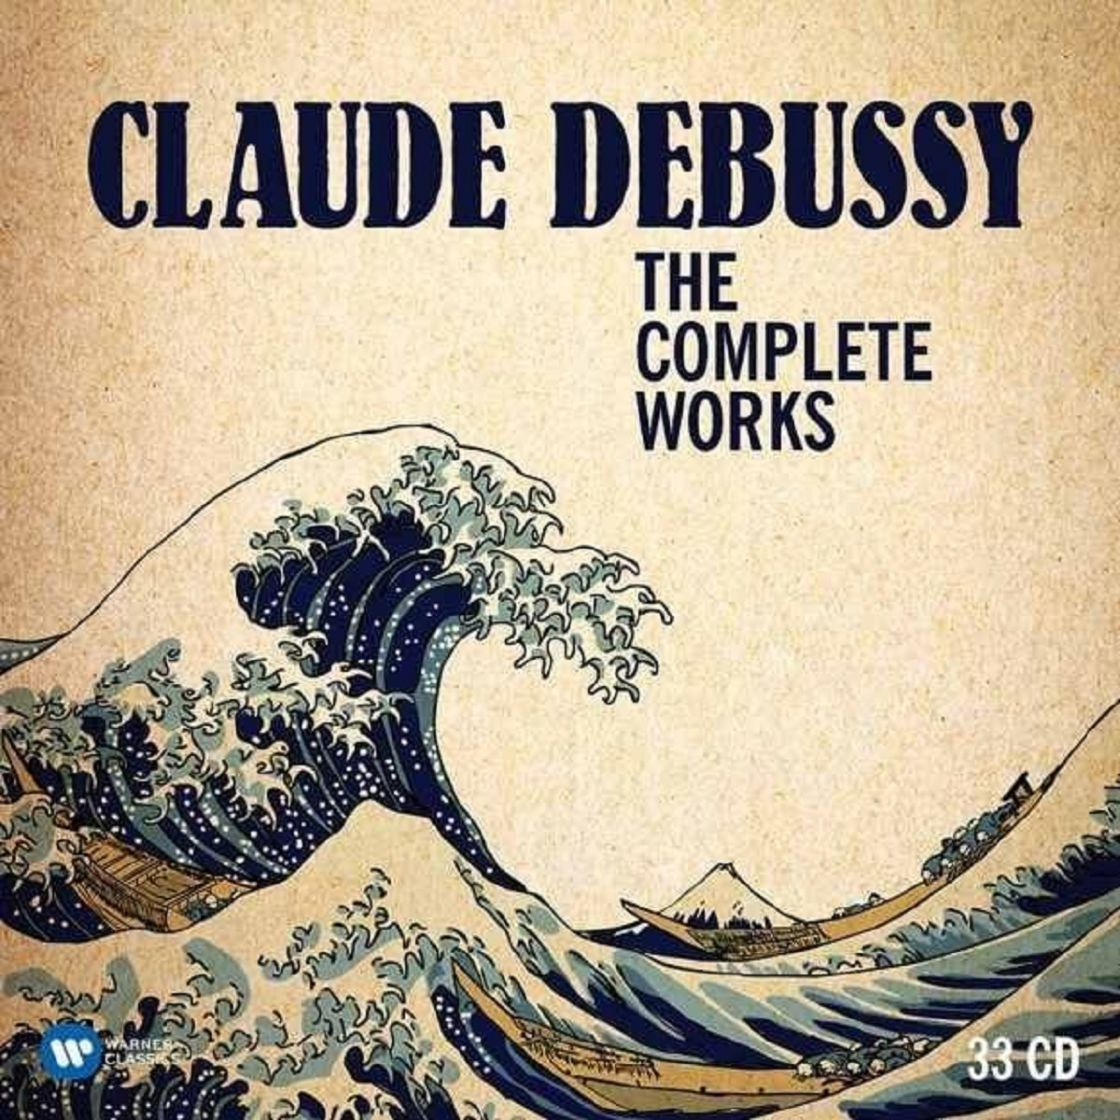 CLAUDE DEBUSSY - THE COMPLETE WORKS